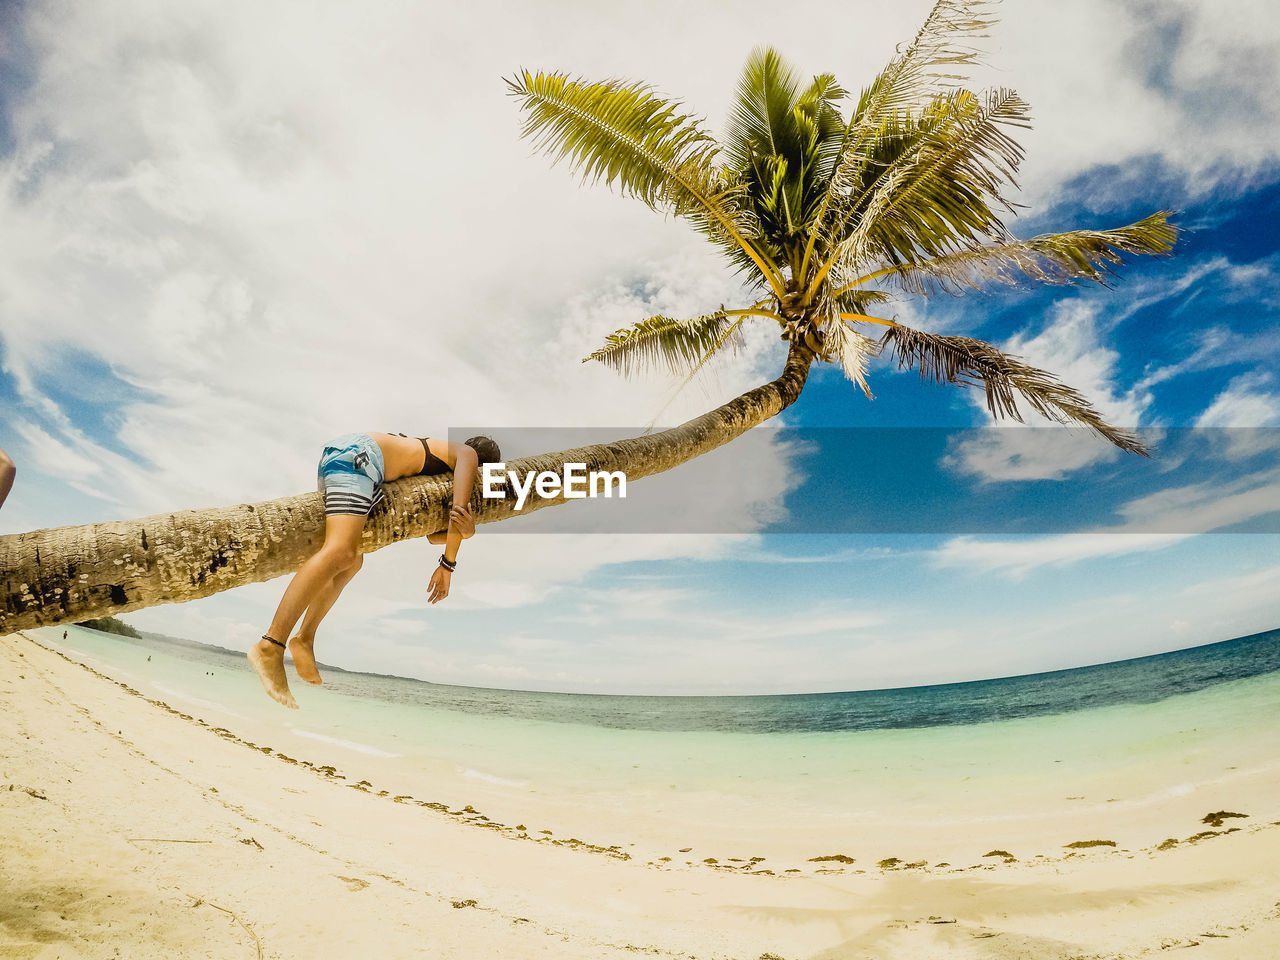 one person, sky, land, beach, leisure activity, palm tree, lifestyles, cloud - sky, tropical climate, nature, real people, full length, young adult, tree, beauty in nature, young women, bikini, adult, sand, outdoors